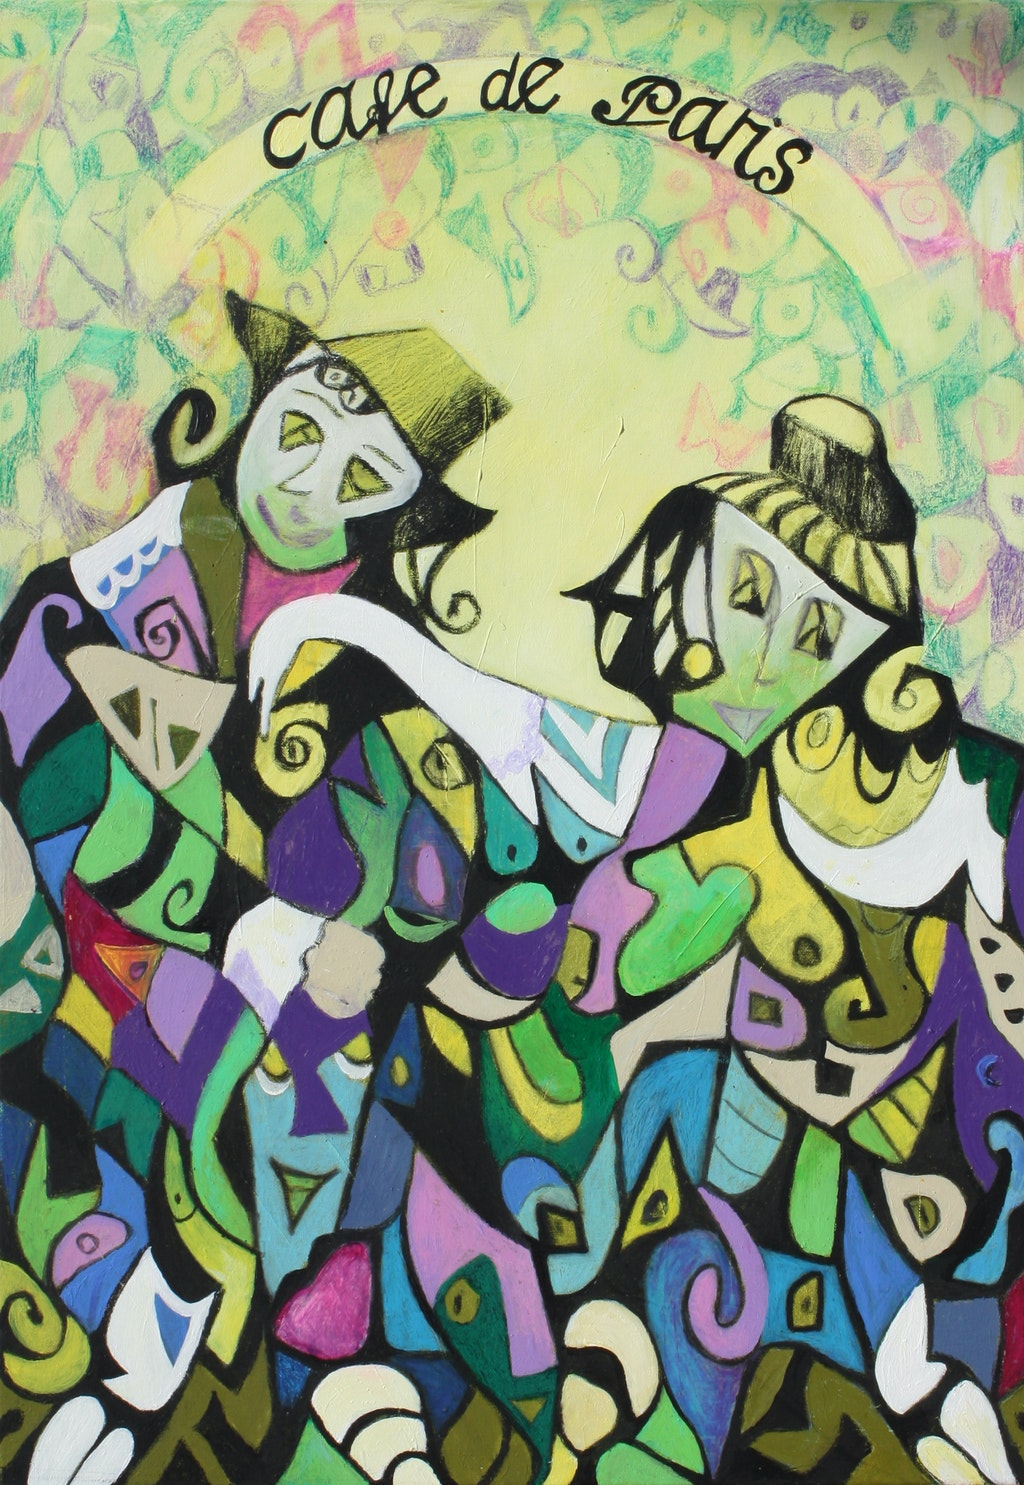 """Painting """"According to Caro Emerald: """"A Night Like This"""""""", painted by Elena Birkenwald in 2012"""